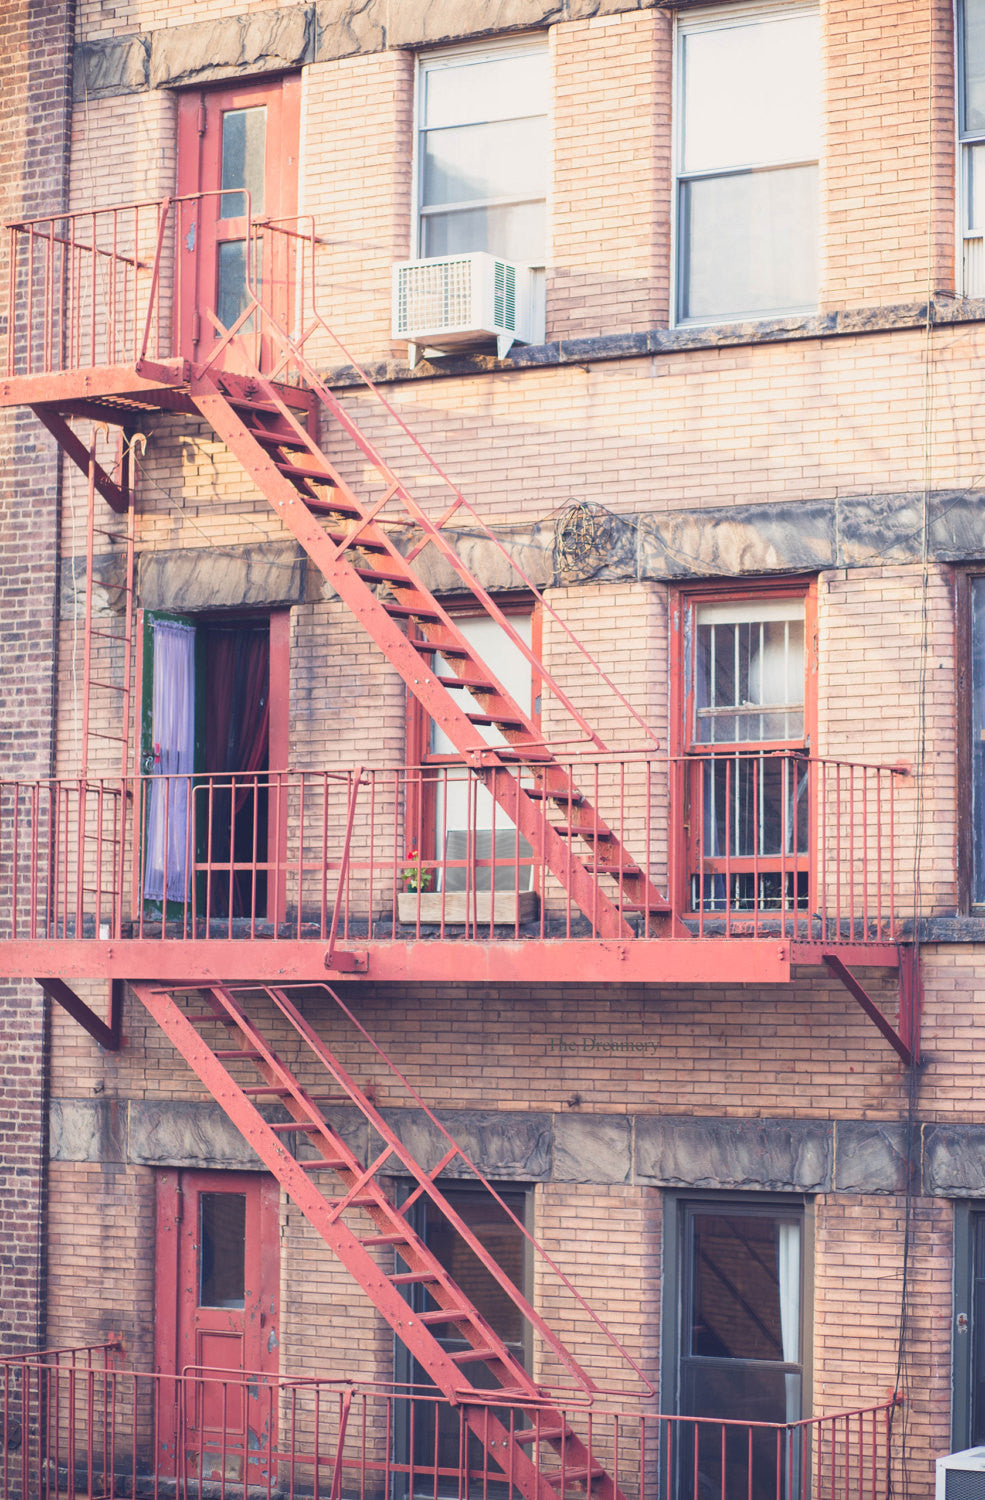 new york photograph new york city decor nyc photography nyc fire escapes industrial art loft decor nyc decor apartment decor architecture